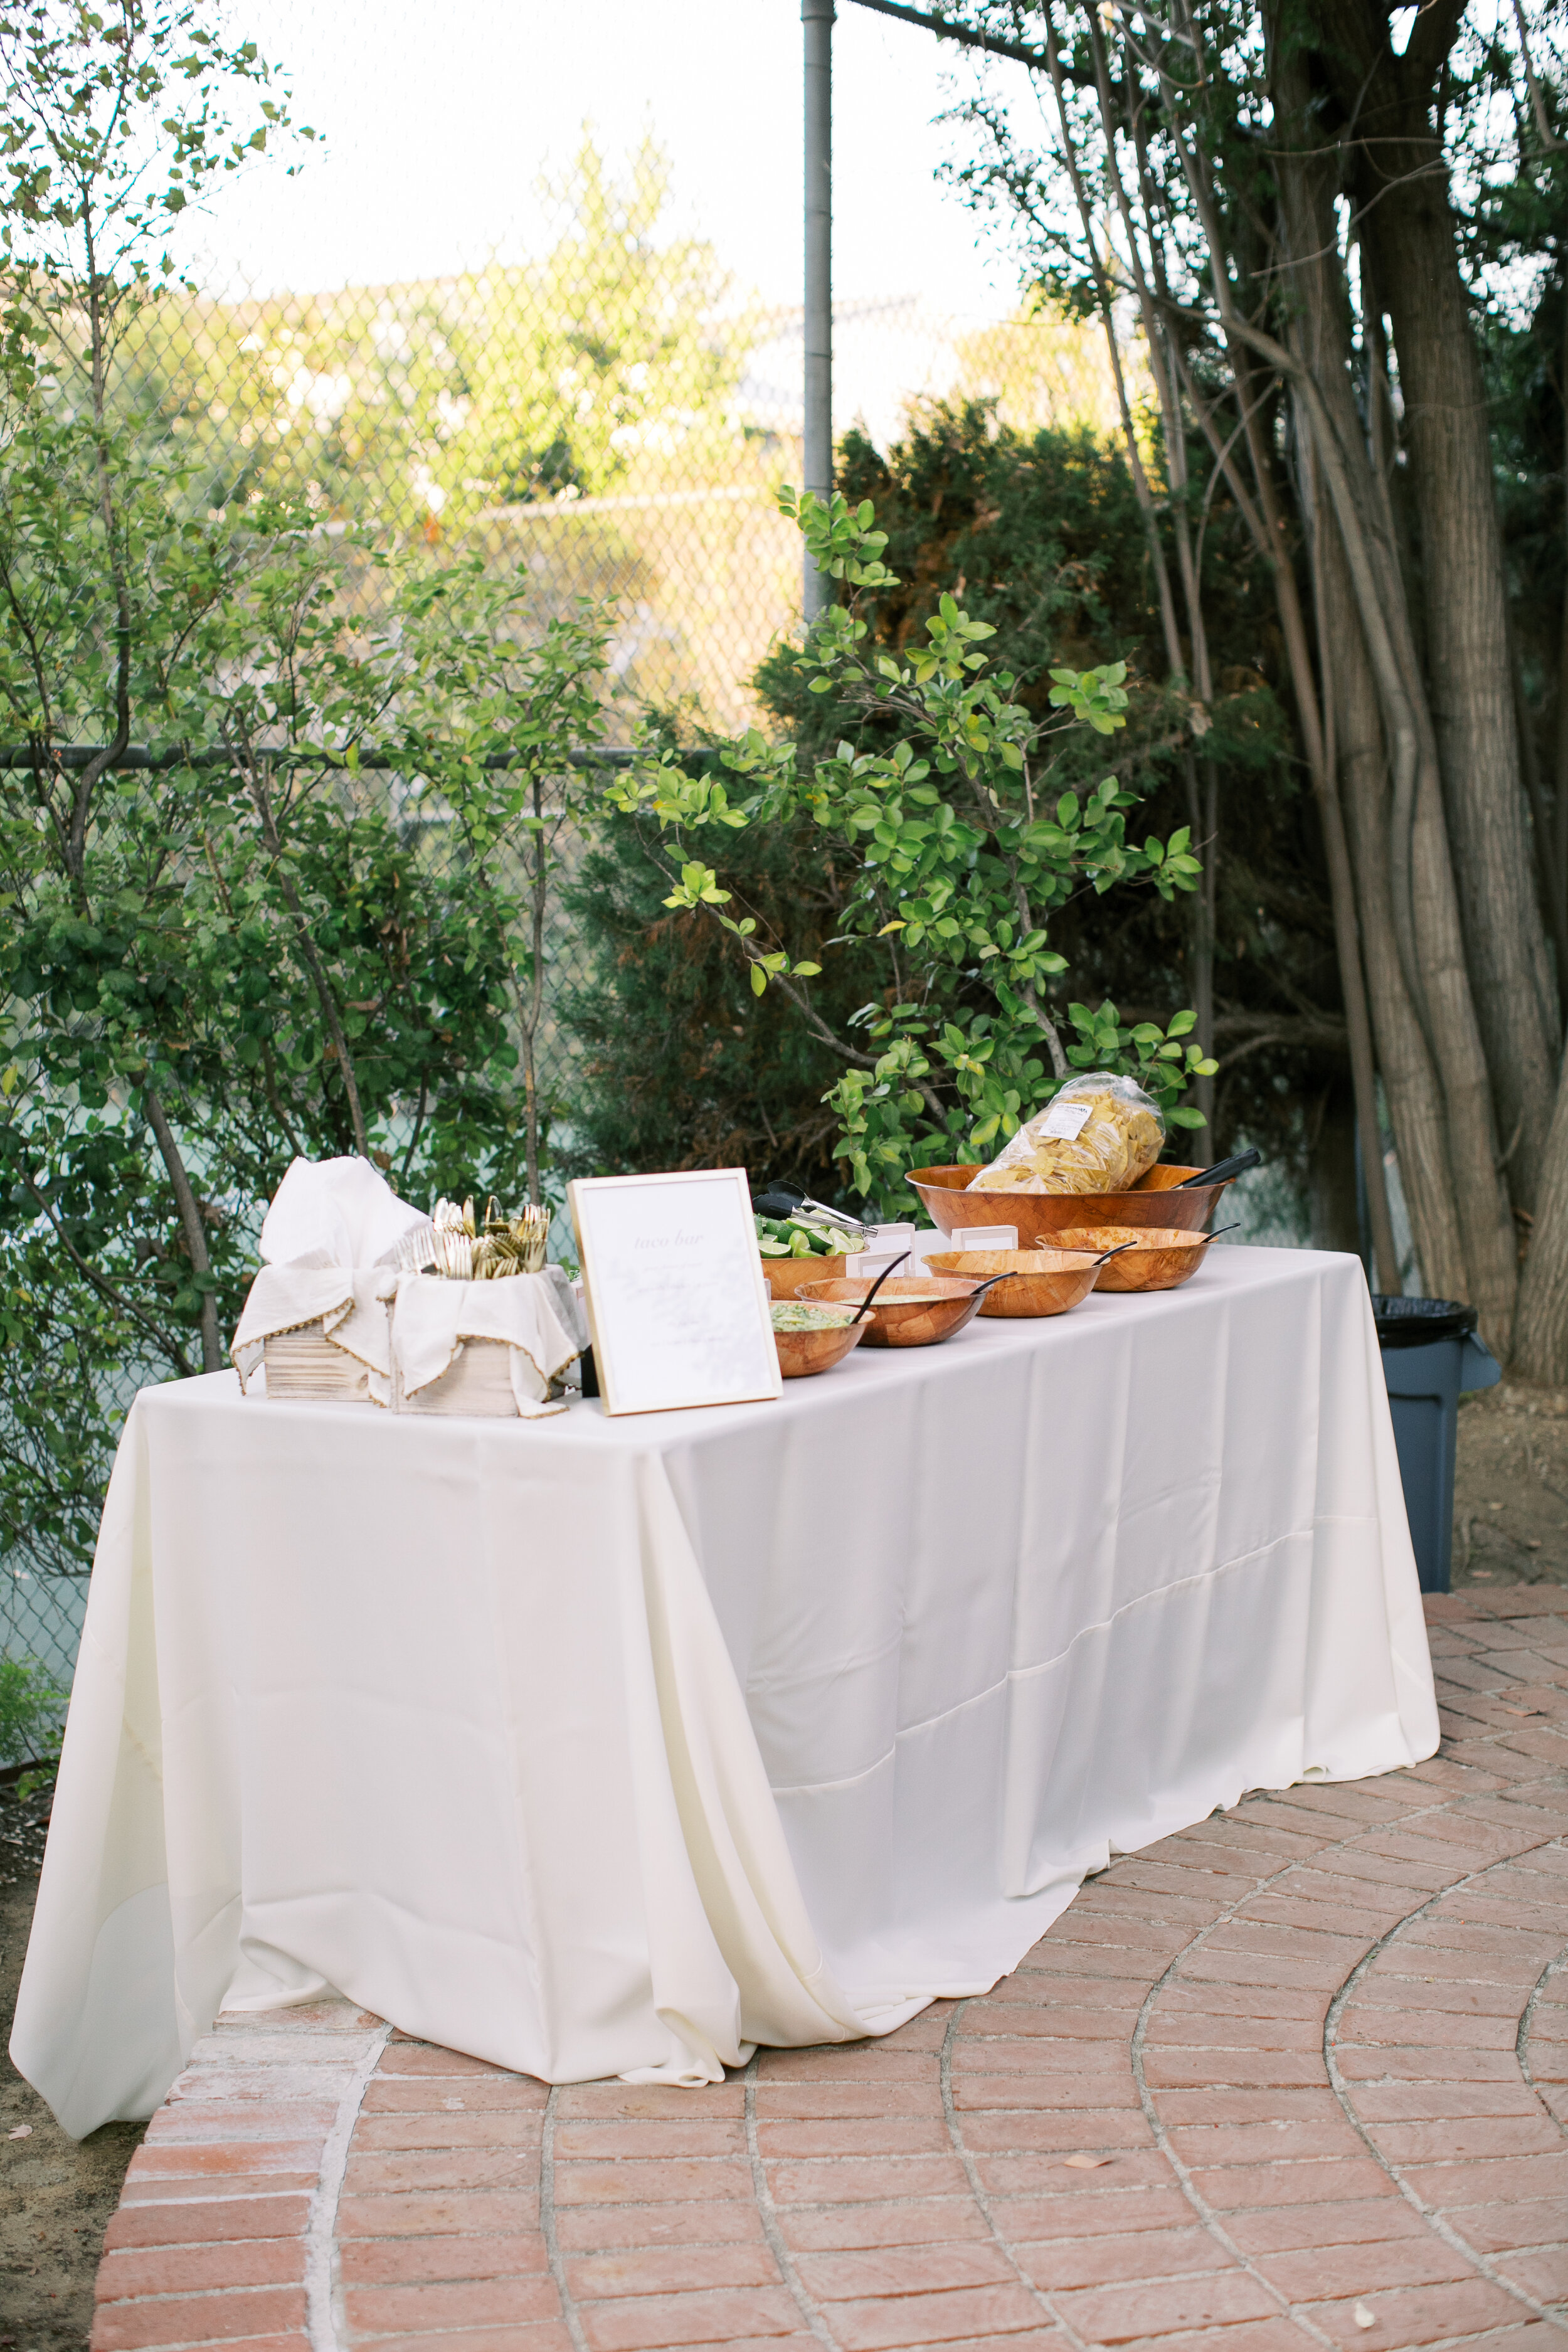 Rebecca-Jared-Engagement-Party-58.jpg